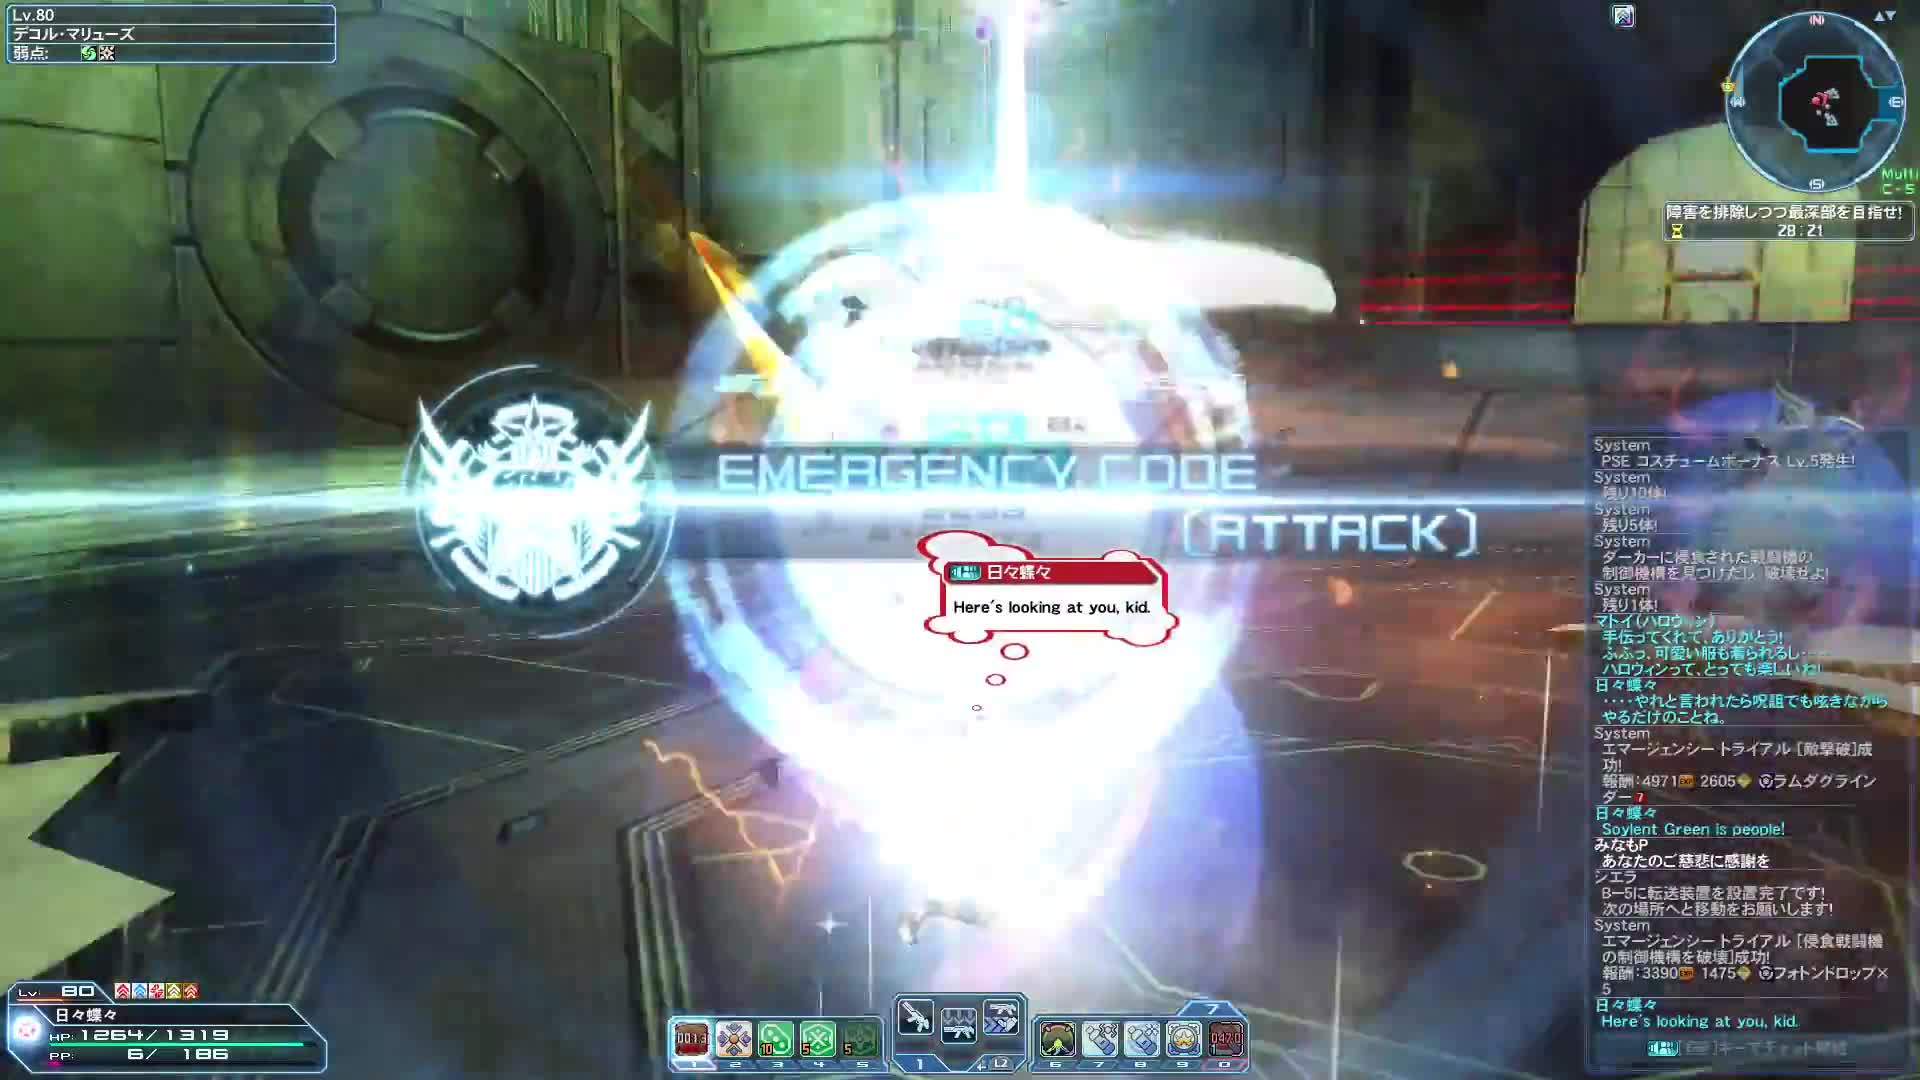 PSO2, Bruh just spam LMB and win what is this rifle GIFs